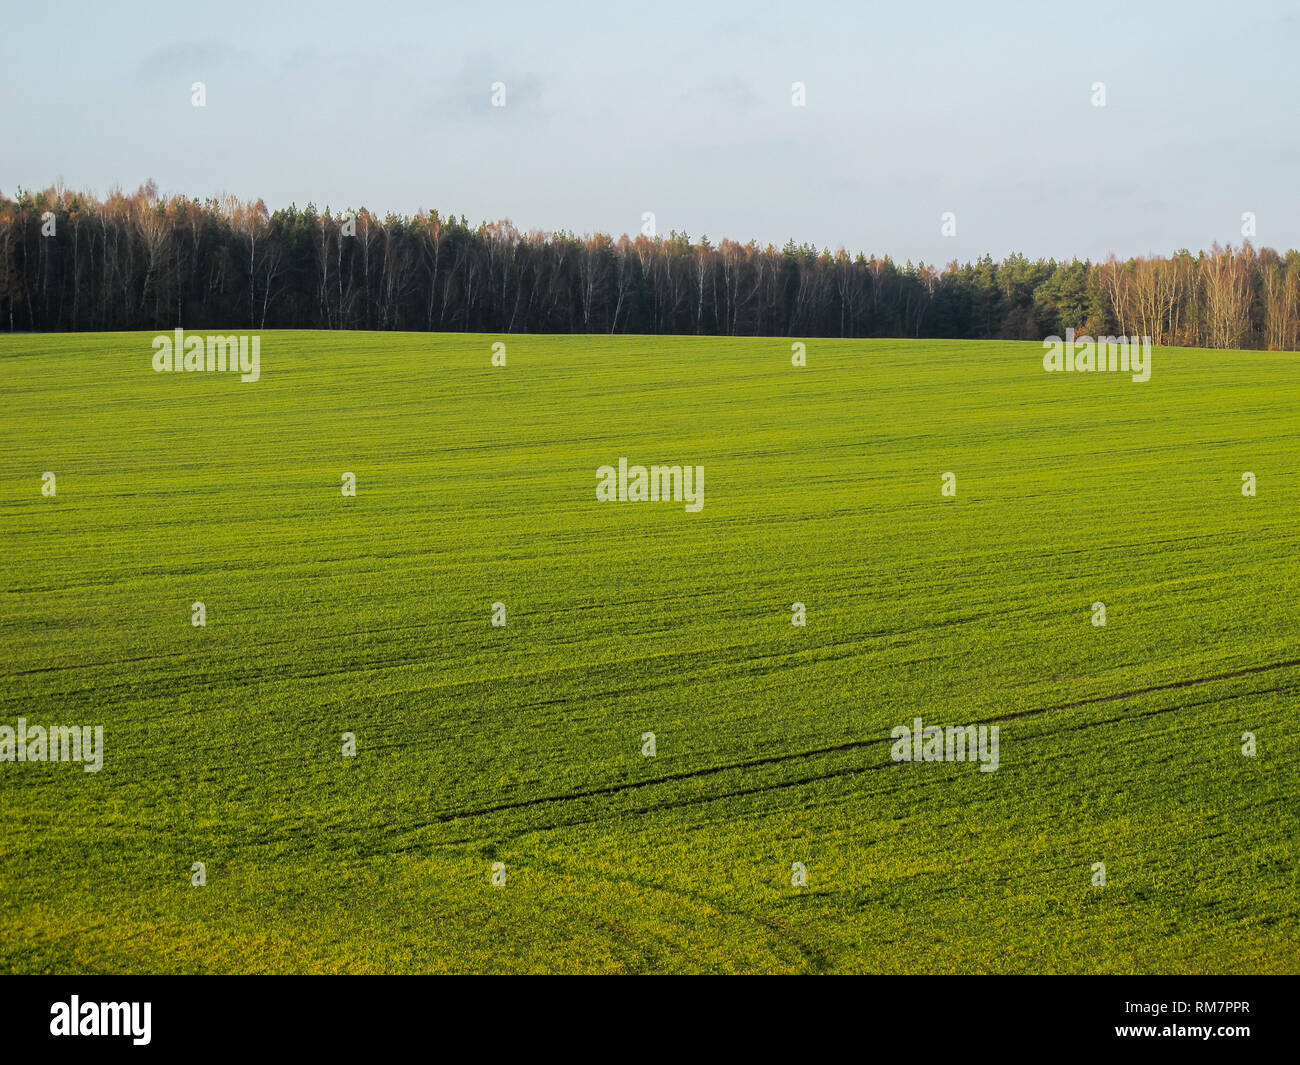 Wonderful green field and forest in the countryside on a sunny day - Stock Image